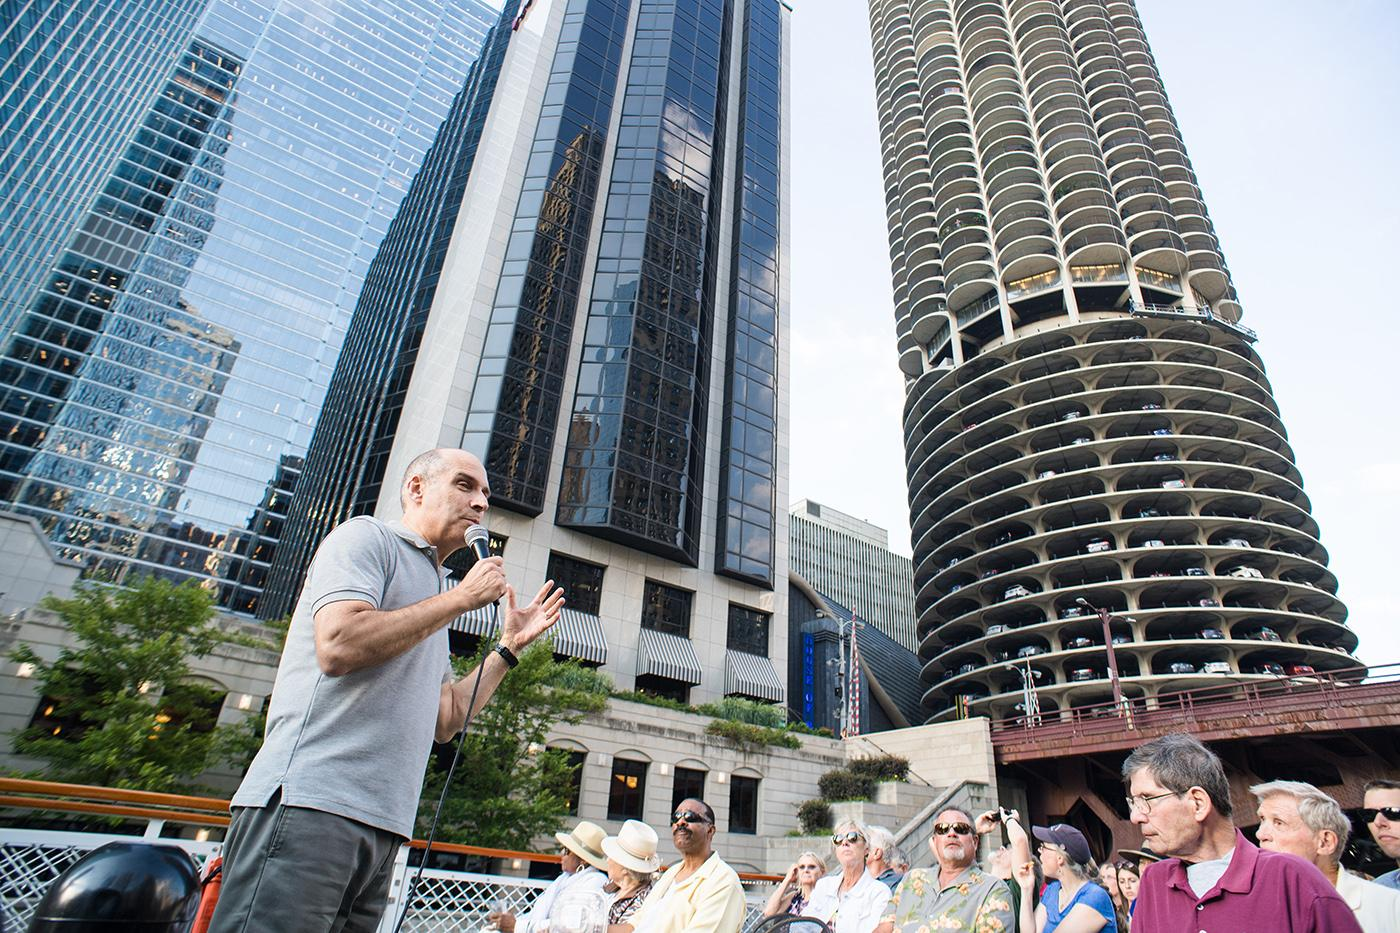 The Chicago River Tour with Geoffrey Baer. Photo: Ken Carl